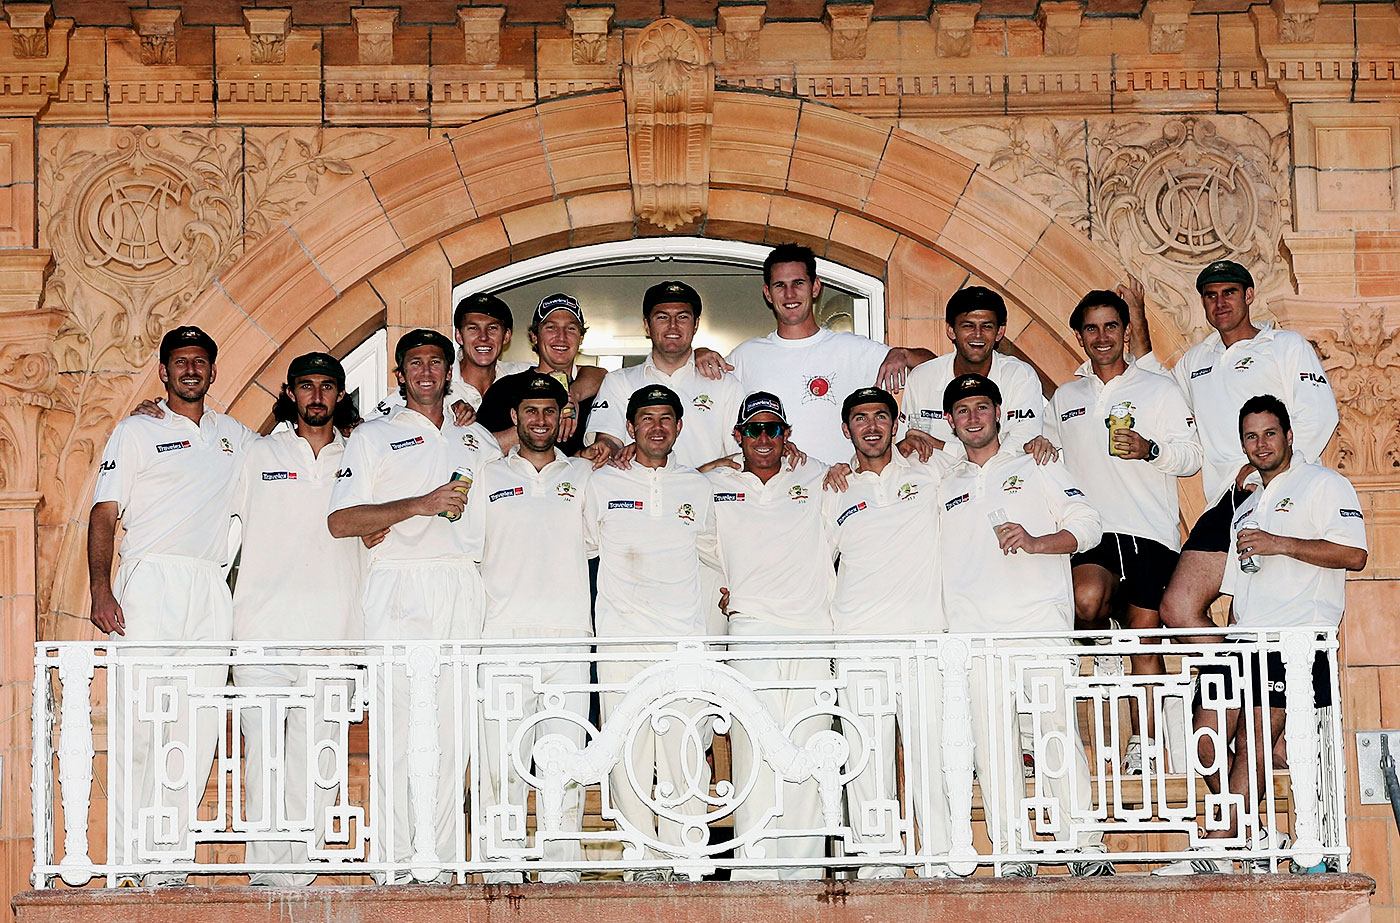 JL with his elite mates: after winning the Lord's Test in 2005, Langer led his team into the England dressing room to sing the Australian team song